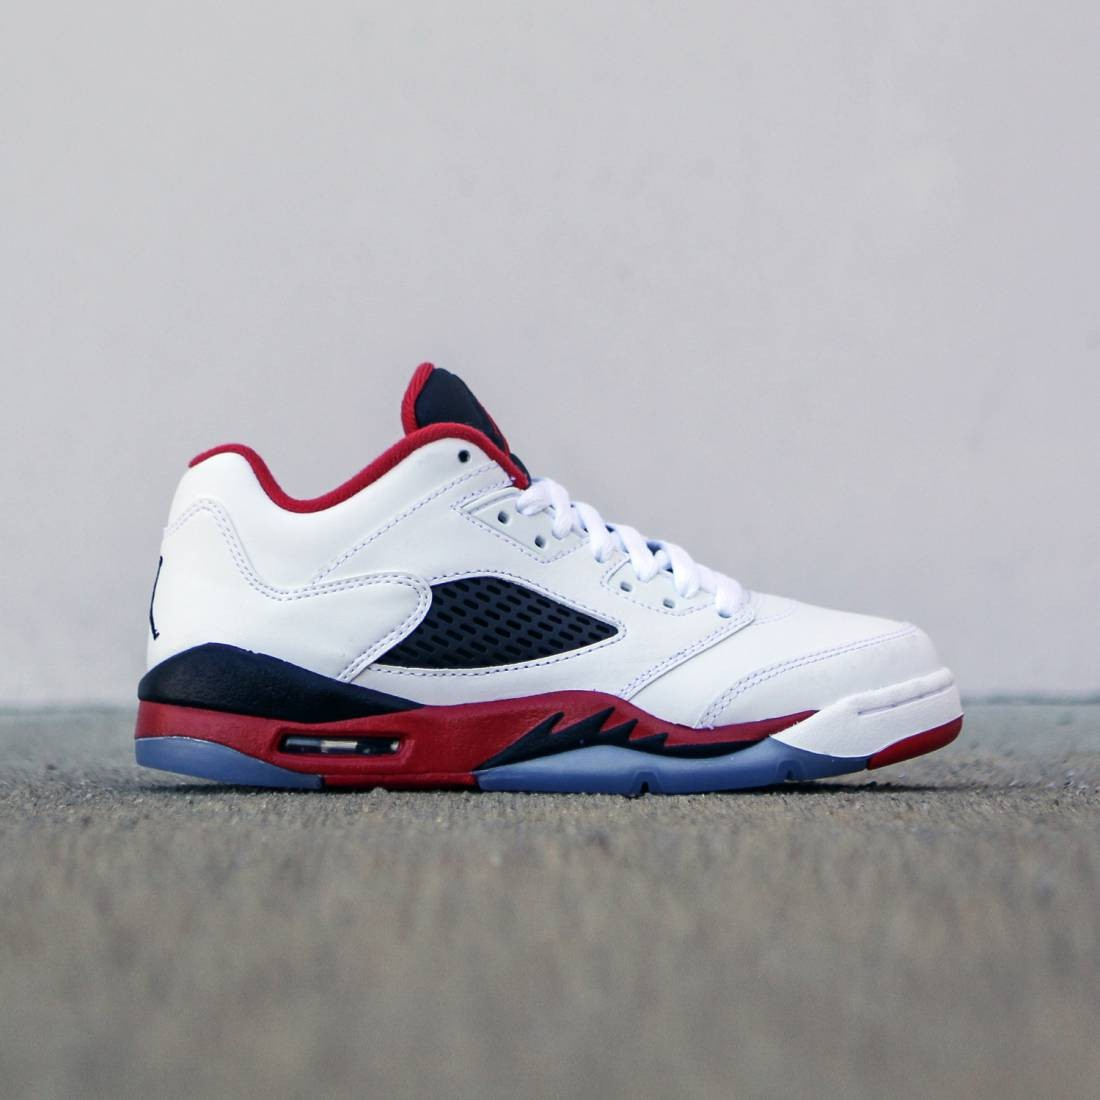 4af8d4f1fbc Jordan Big Kids Air Jordan 5 Retro Low GS Fire Red (white/black//fire red)